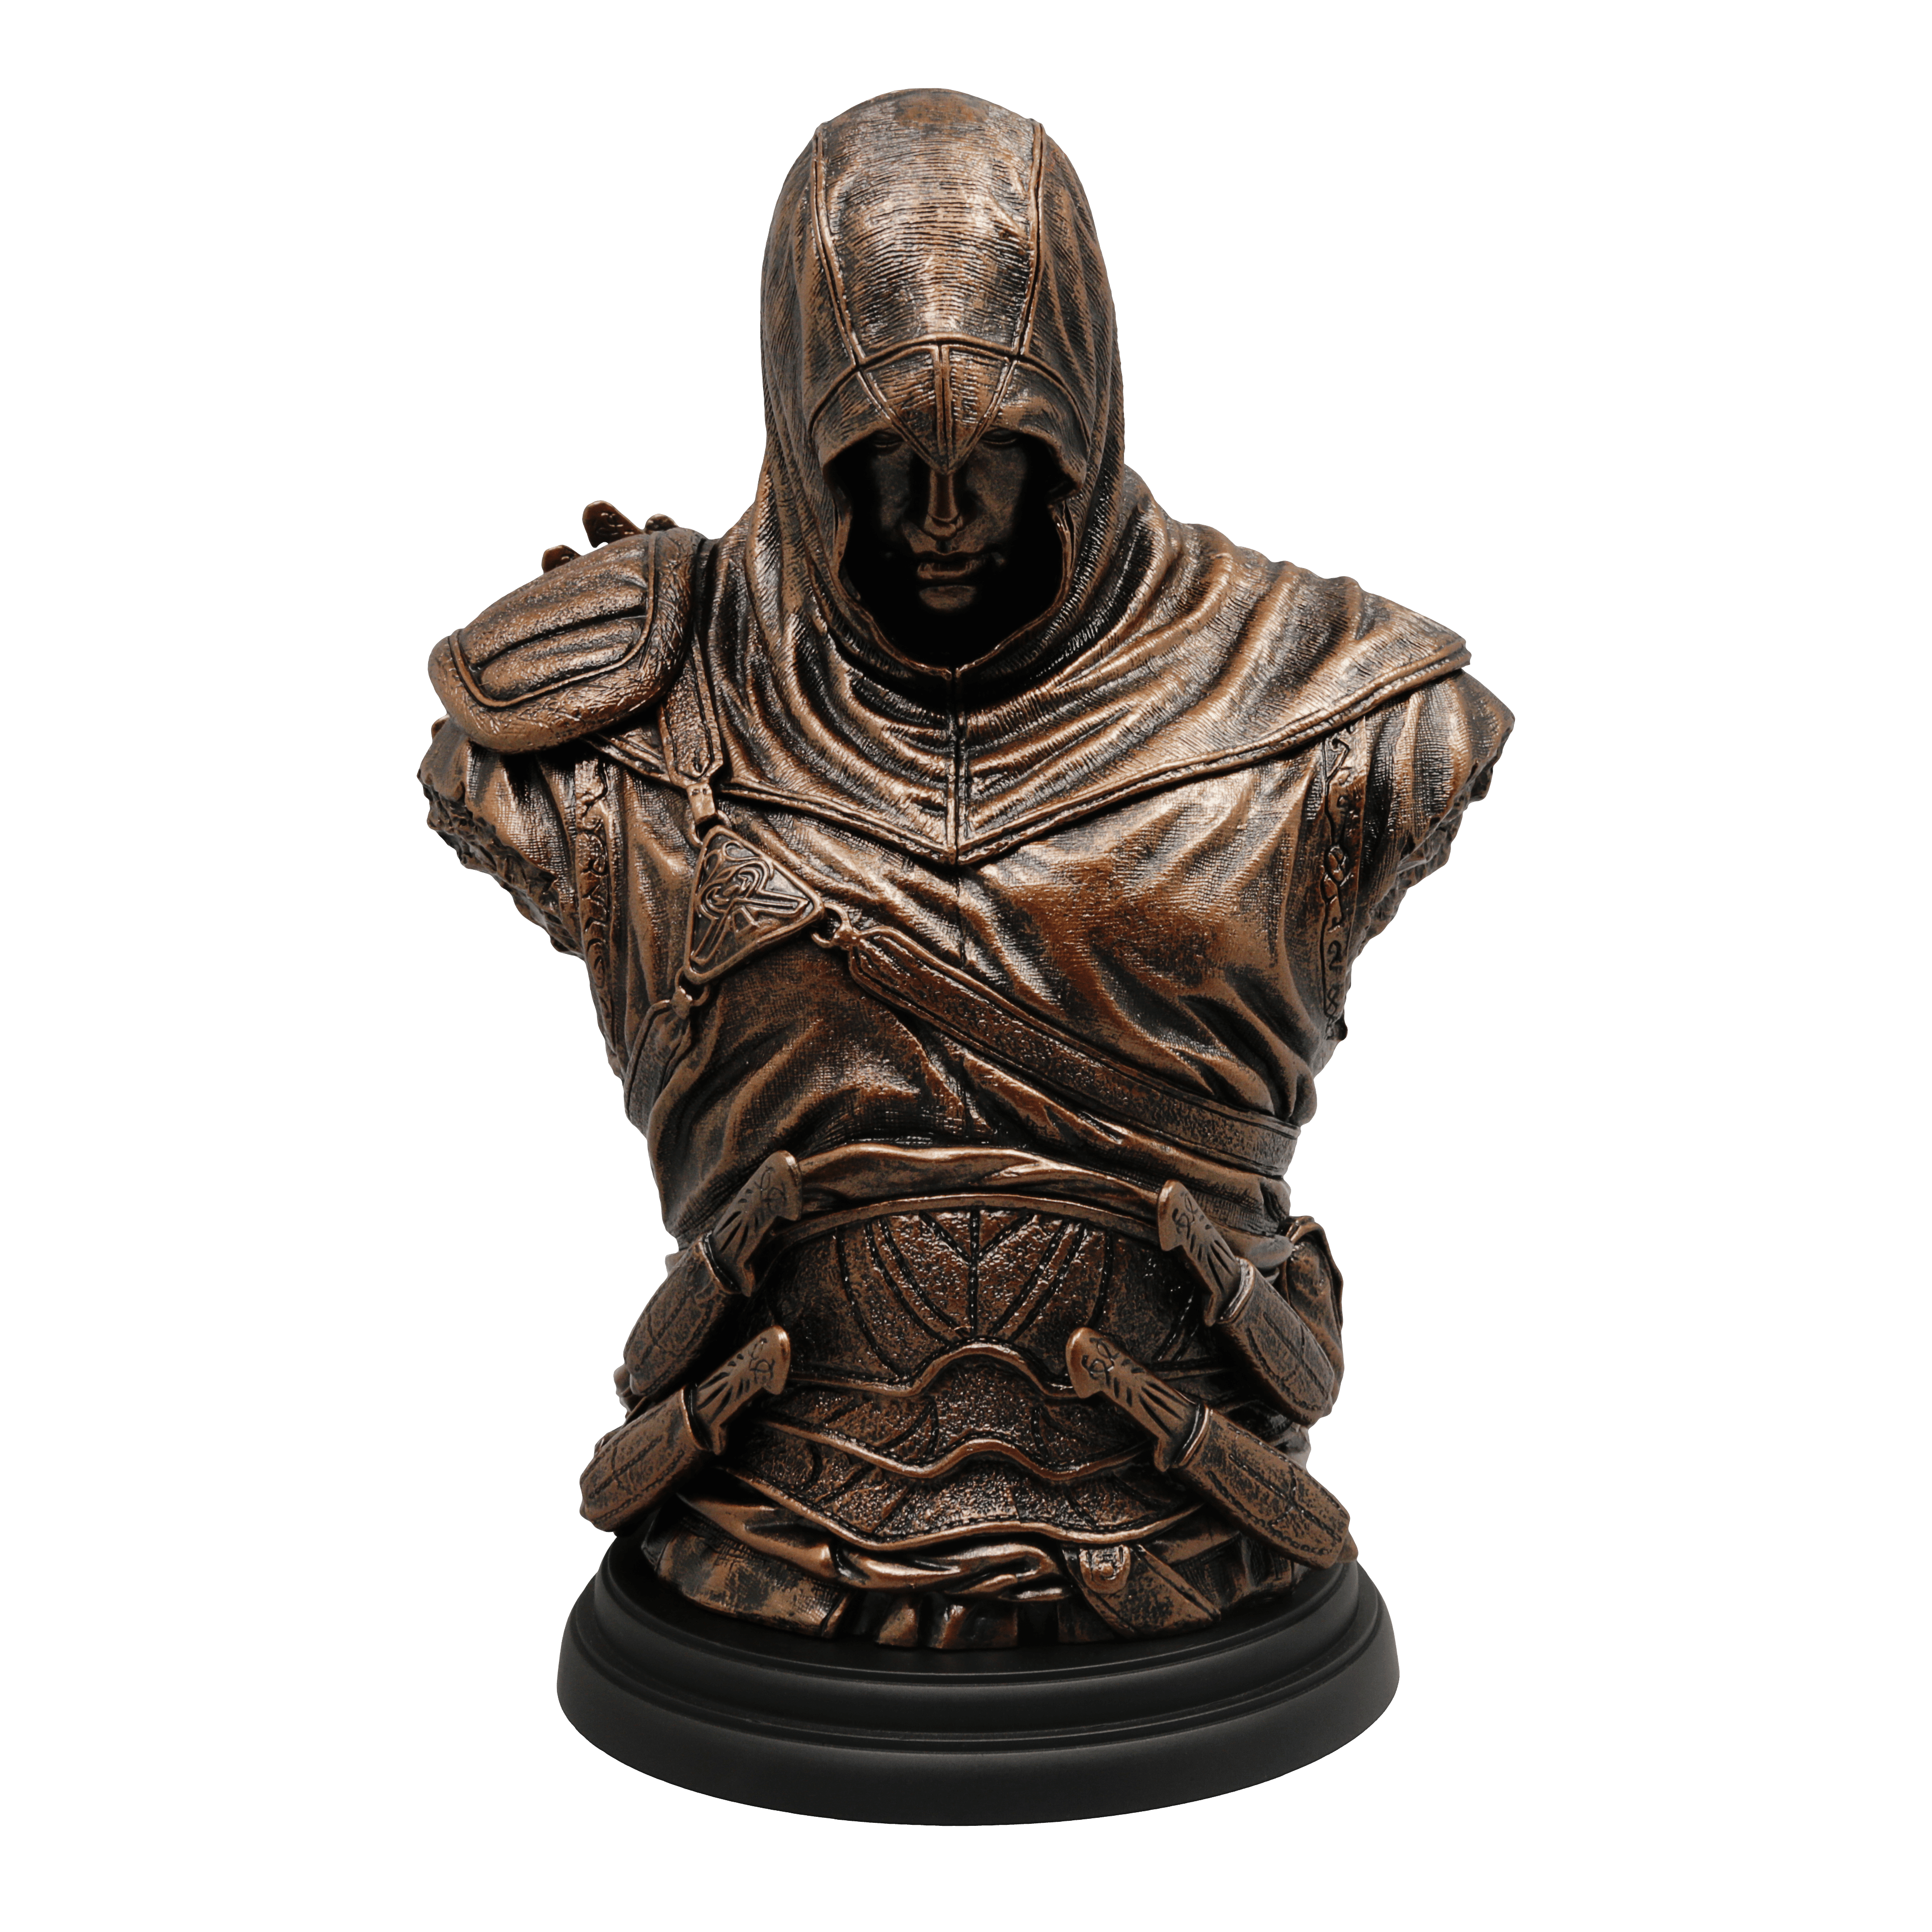 AC1_FIGURINE_ALTAIR_BRONZE_BUST_PHOTO_PNG_1_1459987635